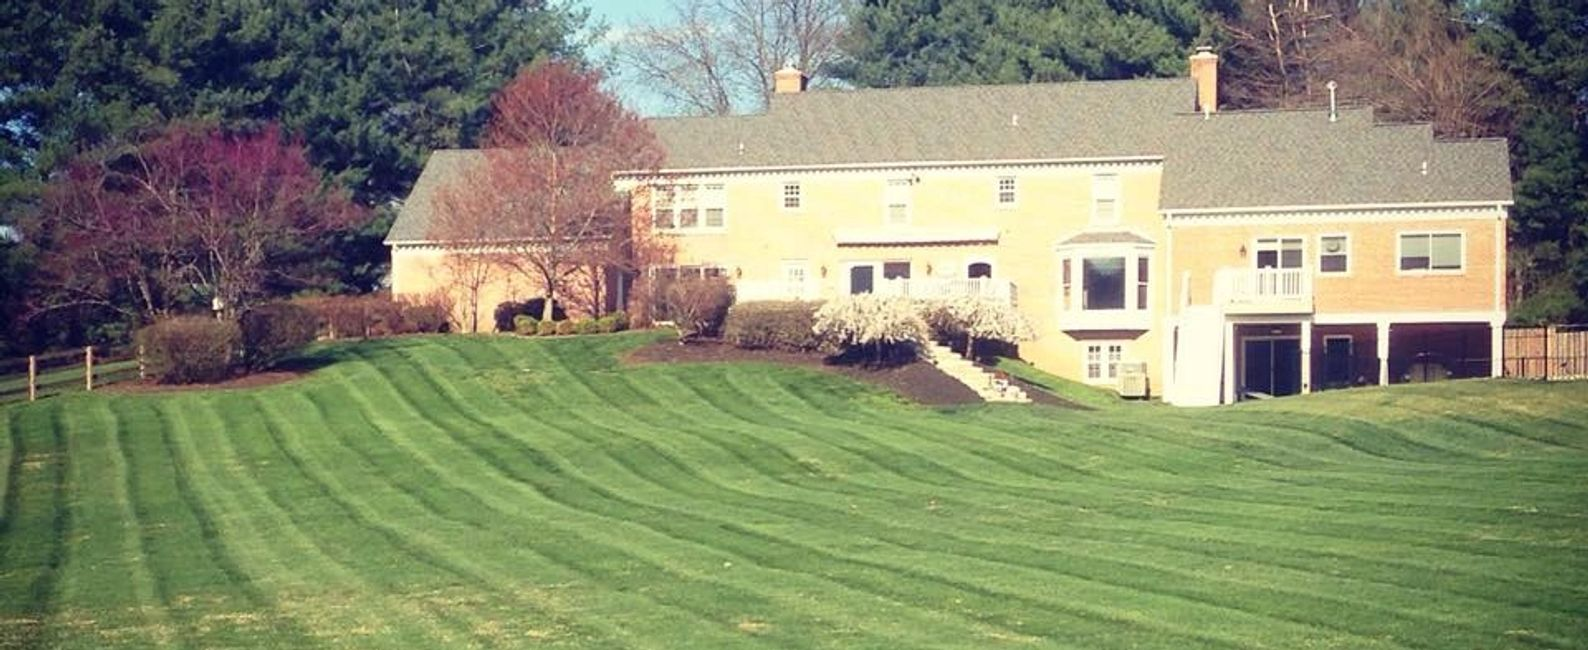 Westminster MD lawn care company. Beautiful landscapes and green grass. Yellow house | LaneScapes